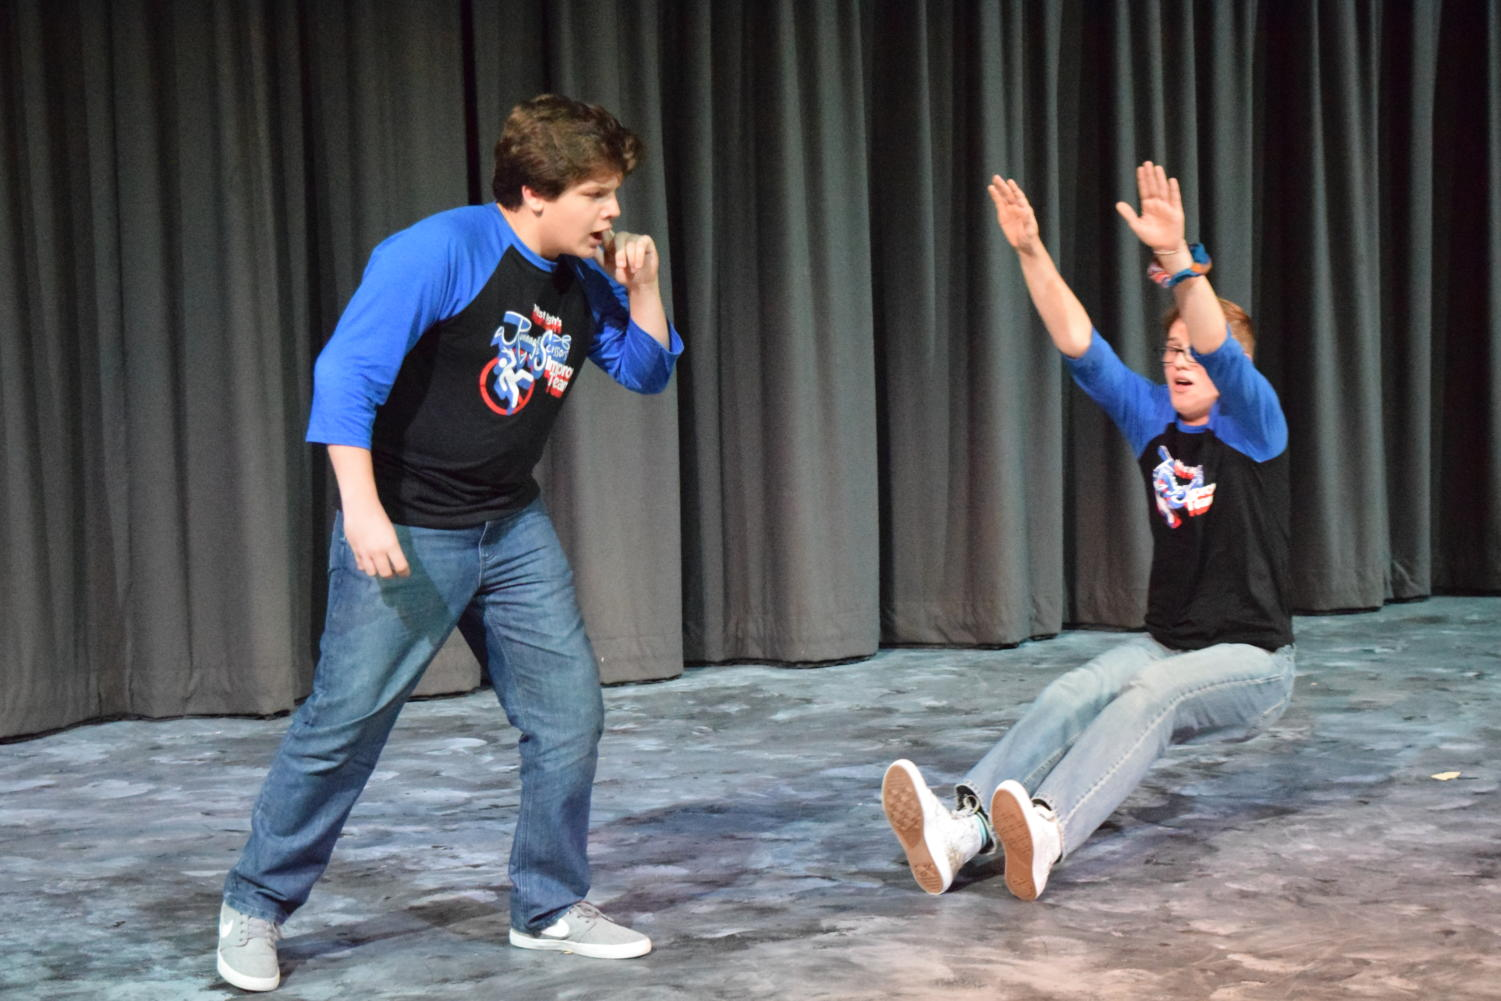 """Throwing himself to the ground, senior Hayden Riehl and freshman Ross Harter improvise a scene together. Harter and Riehl were on team """"Fashion Disaster"""" as part of the show's """"Perfect Storm"""" theme."""